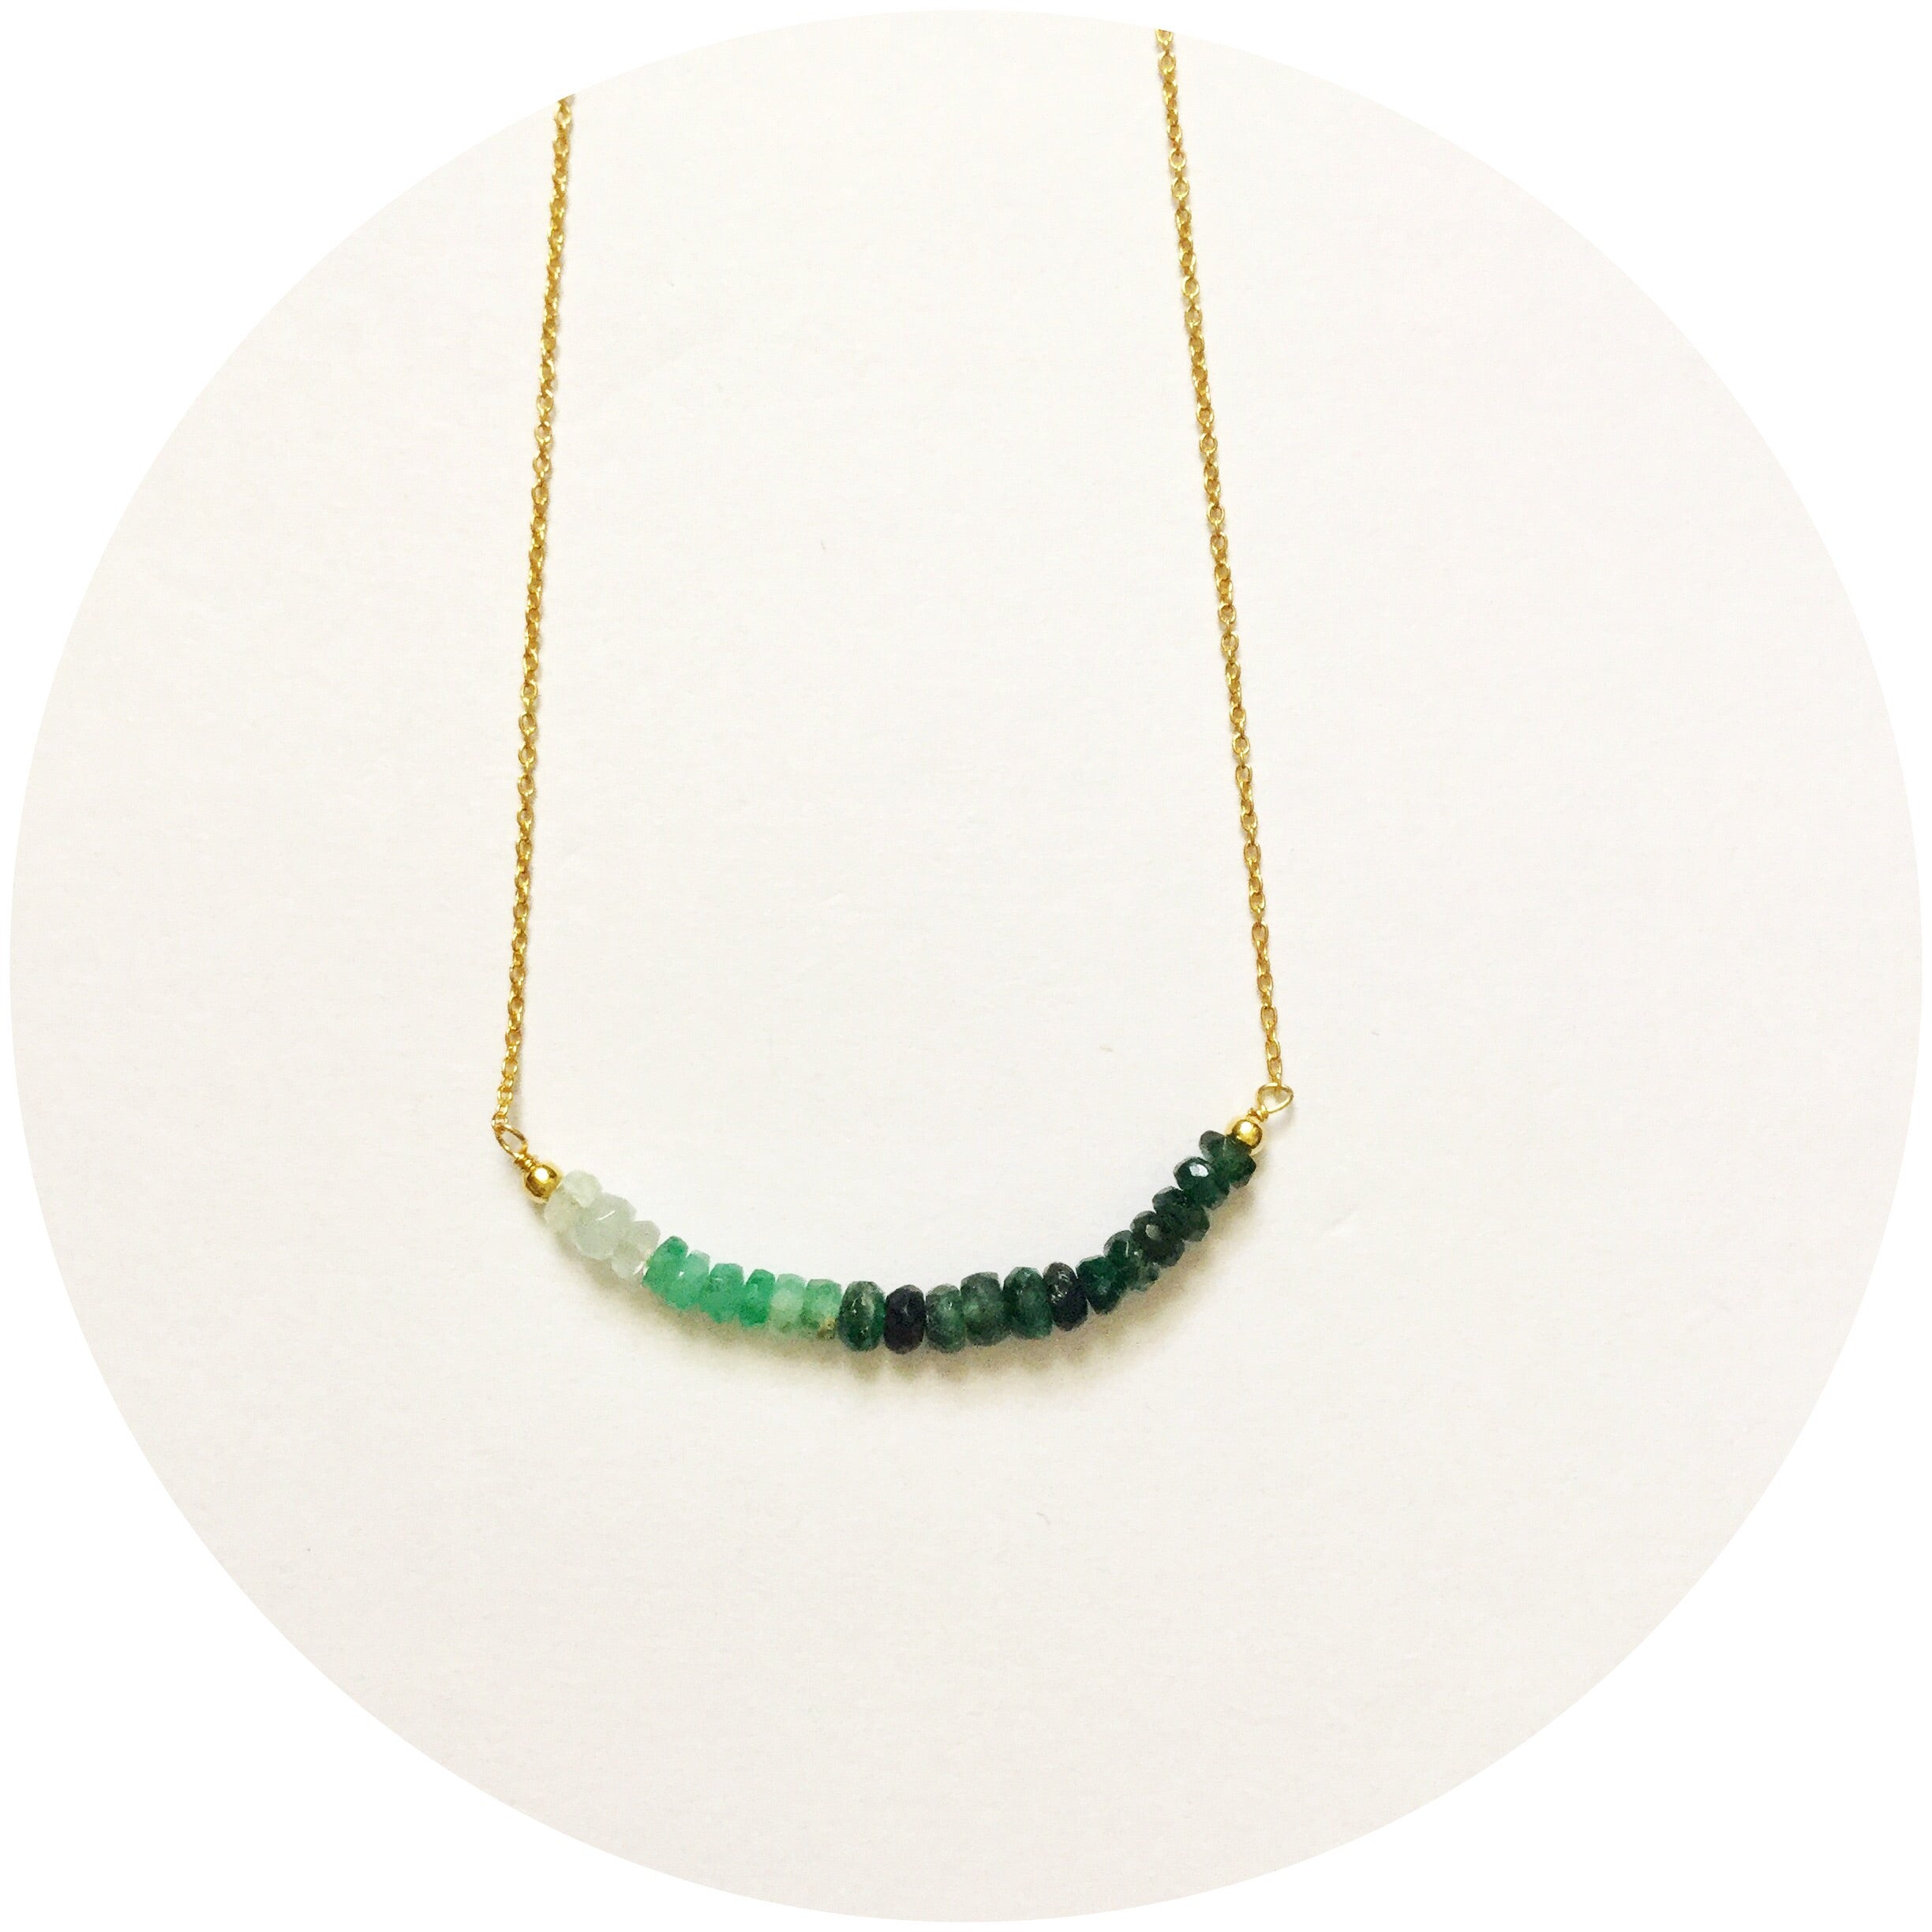 Rock Candy Green Garnet Necklace - Oriana Lamarca LLC